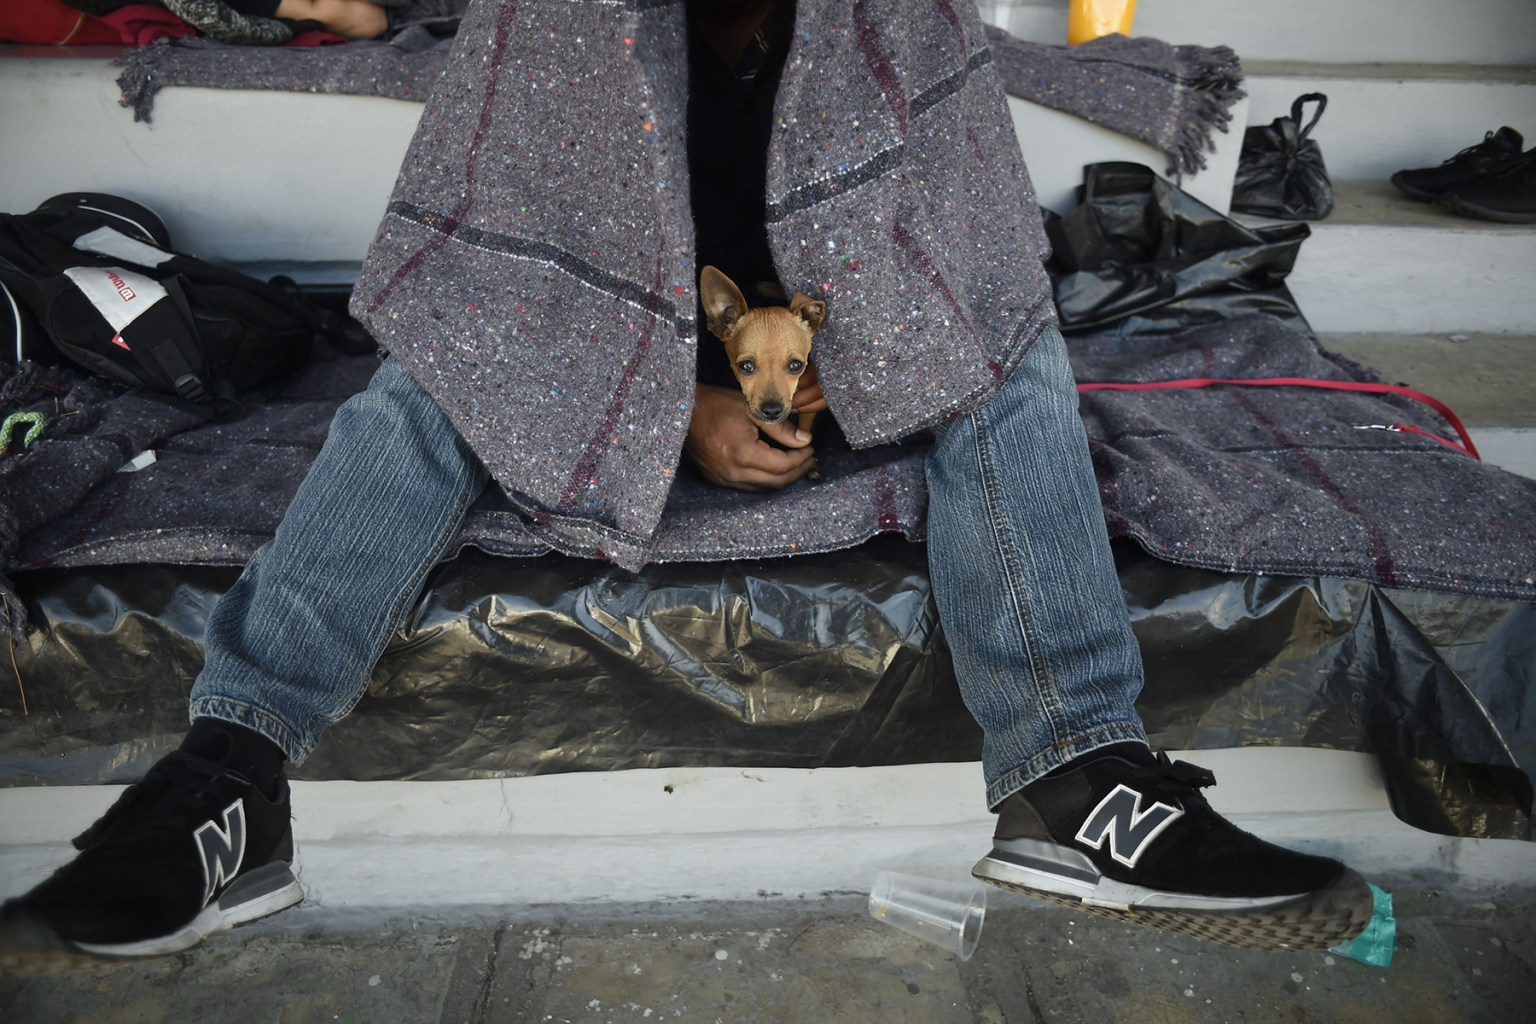 A migrant headed toward the United States holds his dog during a stop at a temporary shelter in a sports center in Mexico City on Nov. 5. ALFREDO ESTRELLA/AFP/Getty Images